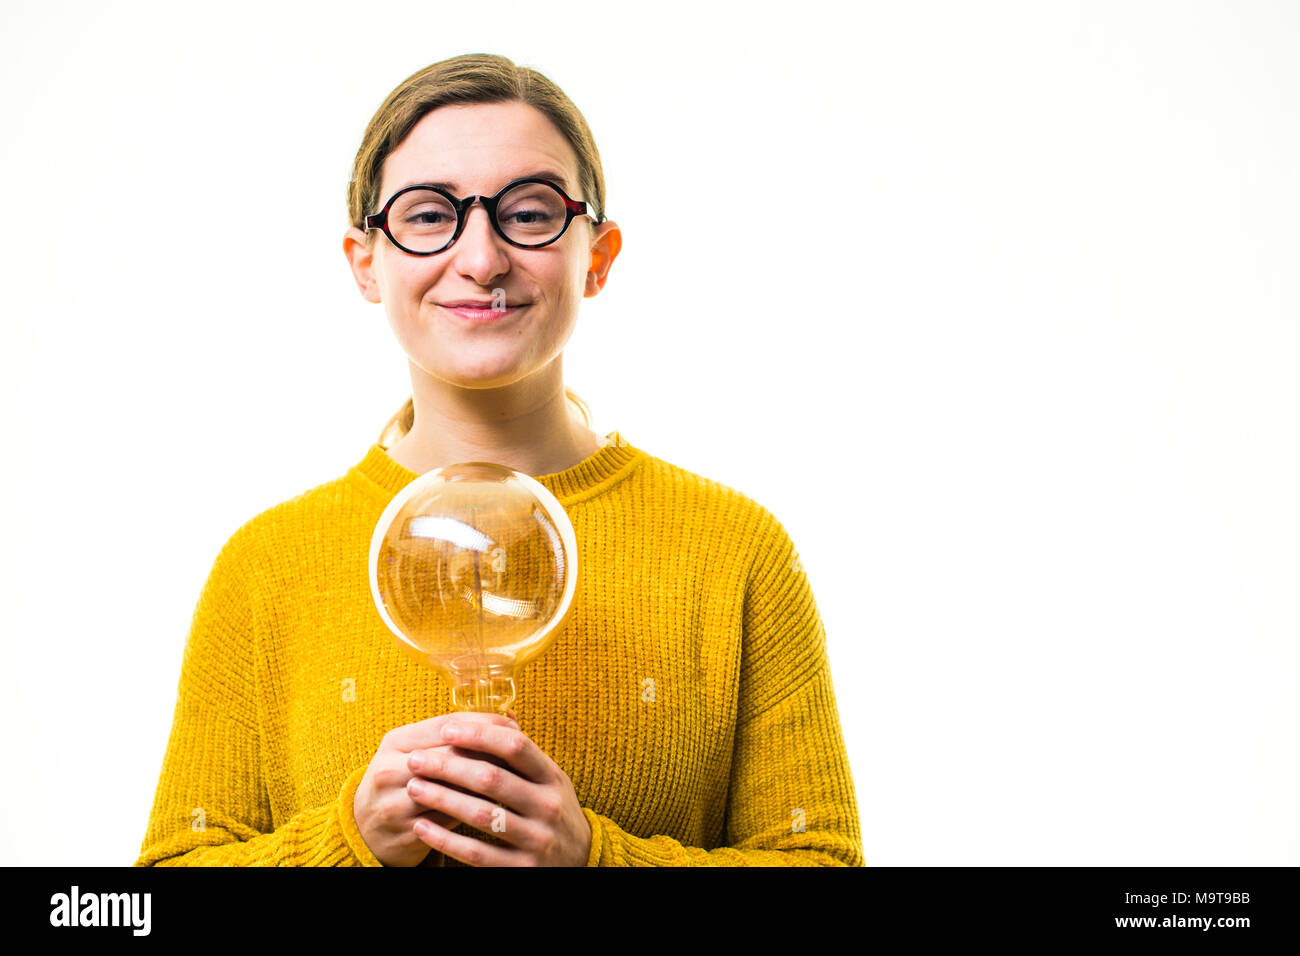 Inspiration and Creativity - the lightbulb moment: A young 'geeky' looking Caucasian woman girl wearing a yellow jumper sweater  and round glasses, holding an old retro-style elecric light bulb  , against a white background, UK - Stock Image